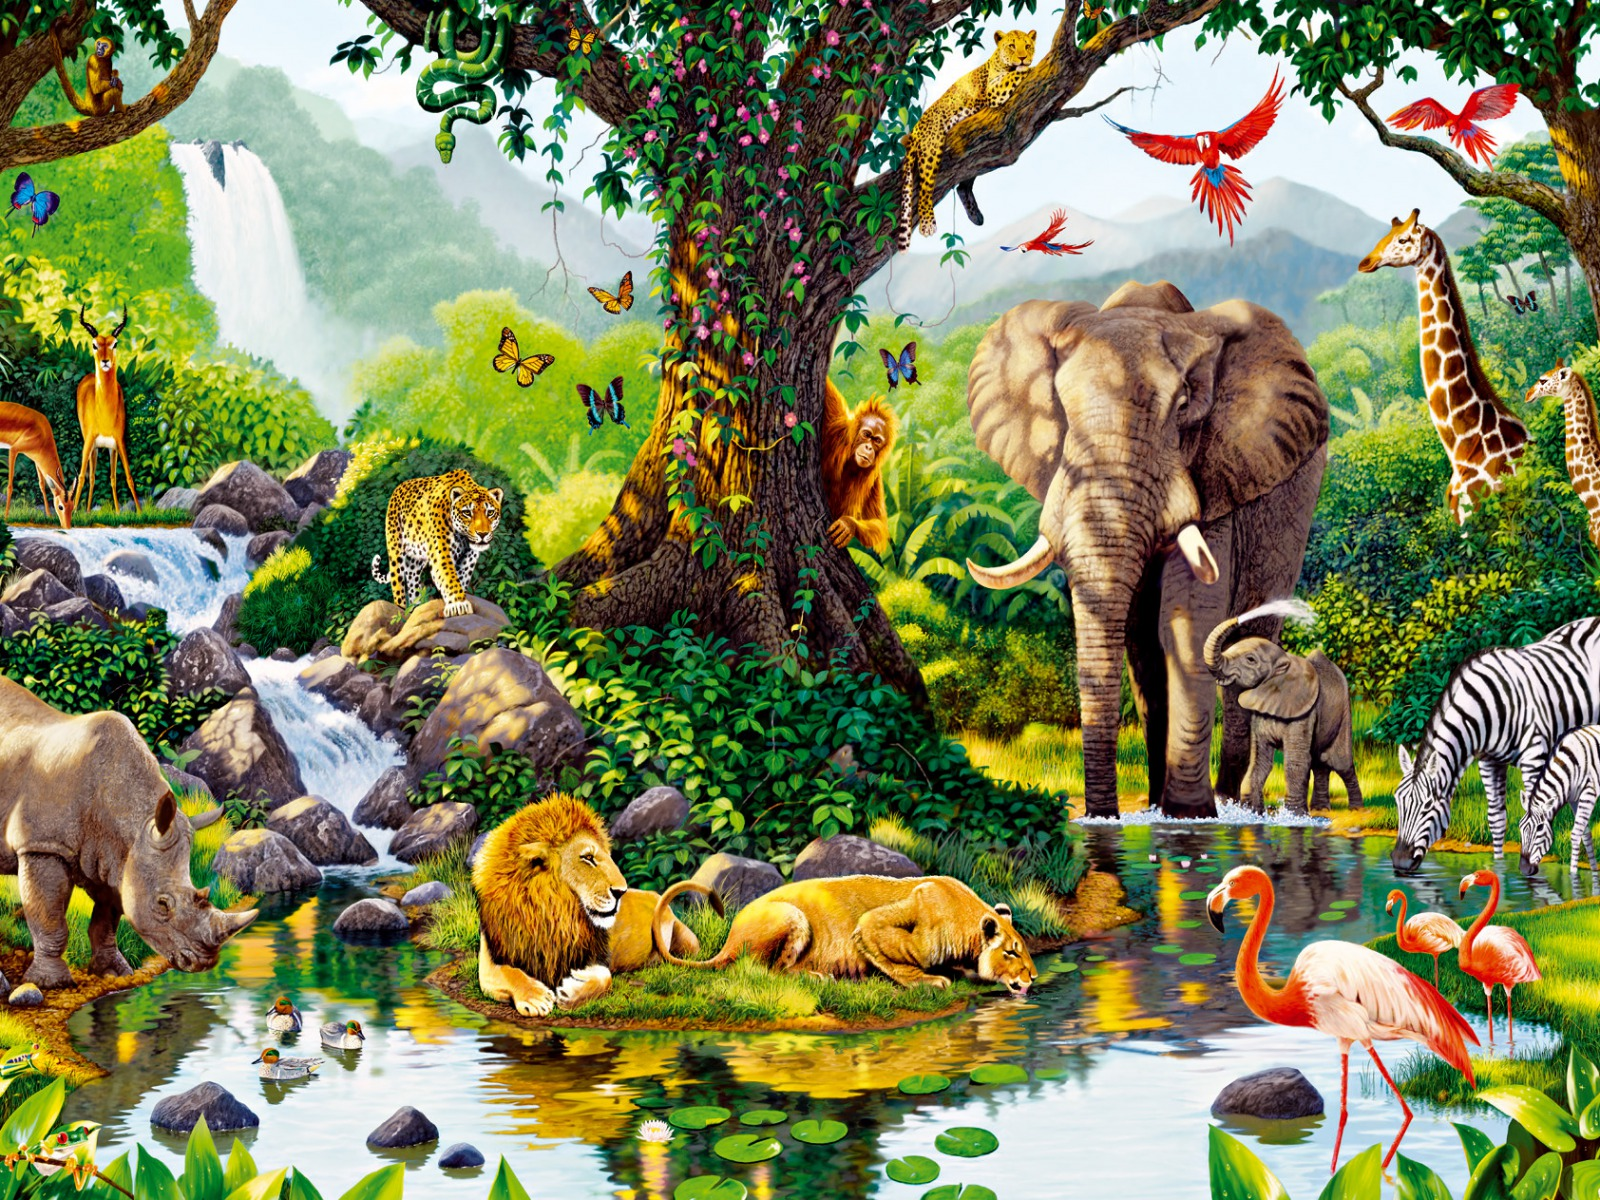 Jungle animals seven wallpapers jungle animals seven for Adaptacion jardin infantil